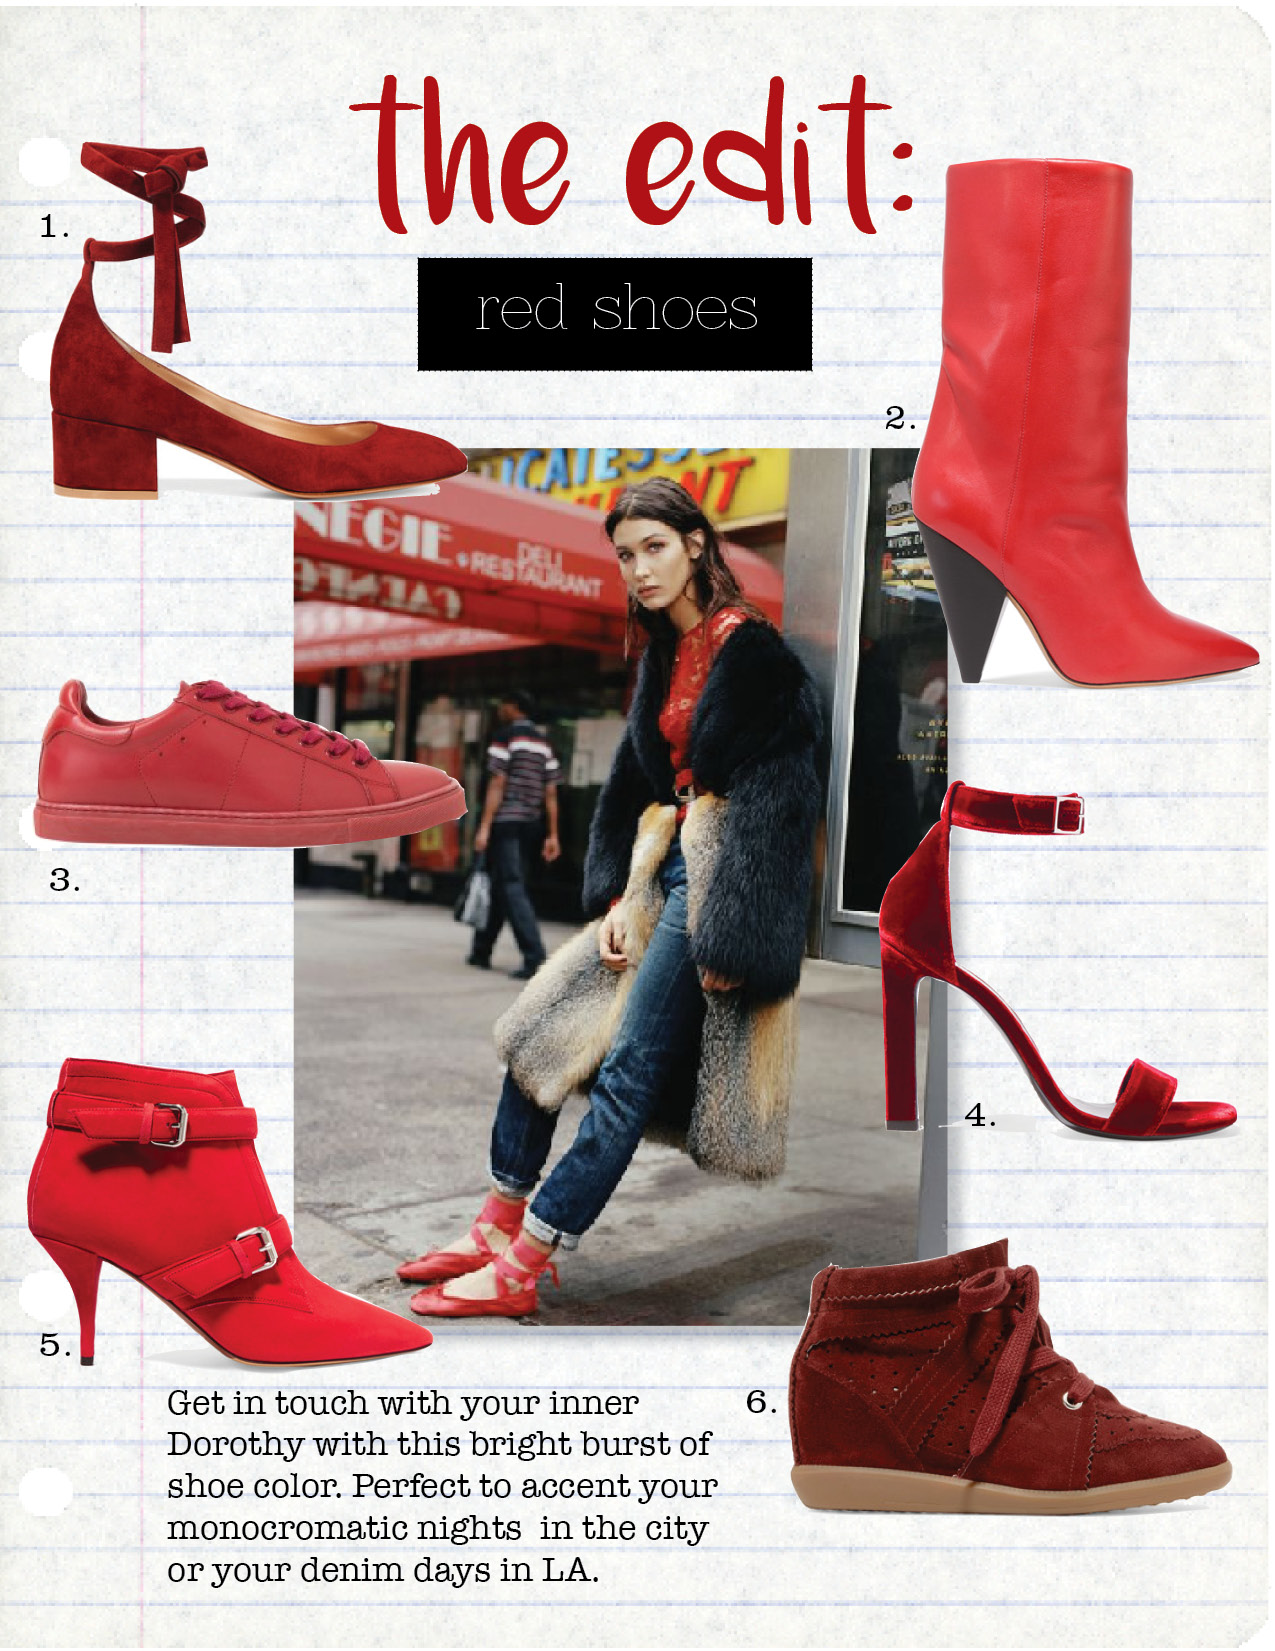 1. gianvito Rossi Suede SHOES, $825,  net-a-porter.com  2. Isabel Marant Leather Boots, $1075,  net-a-porter.com  3. IRO RED SNEAKERS, $400,  iroparis.com  4. Saint Laurent Ankle Strap Heels, $795,  barneys.com  5. Tabitha Simmons Suede Ankle Boot, $995,  net-a-porter.COM  6. ISABEL MARANT SUEDE WeDGE SNEAKERS, $540,  net-a-porter.com